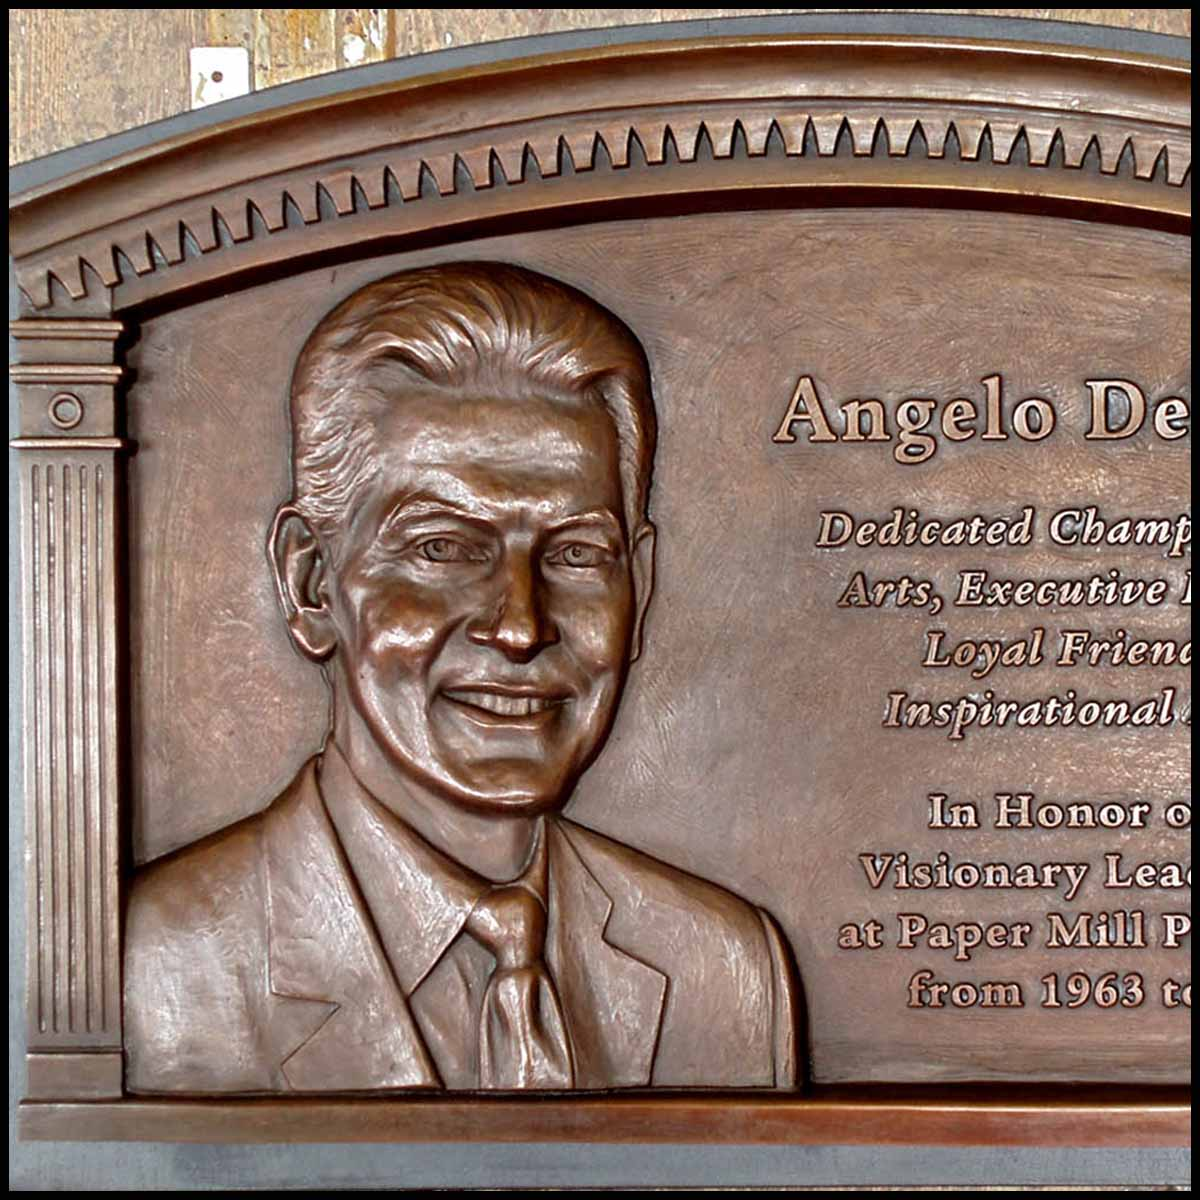 photo of bronze-colored relief plaque of bust of Angelo Del Rossi